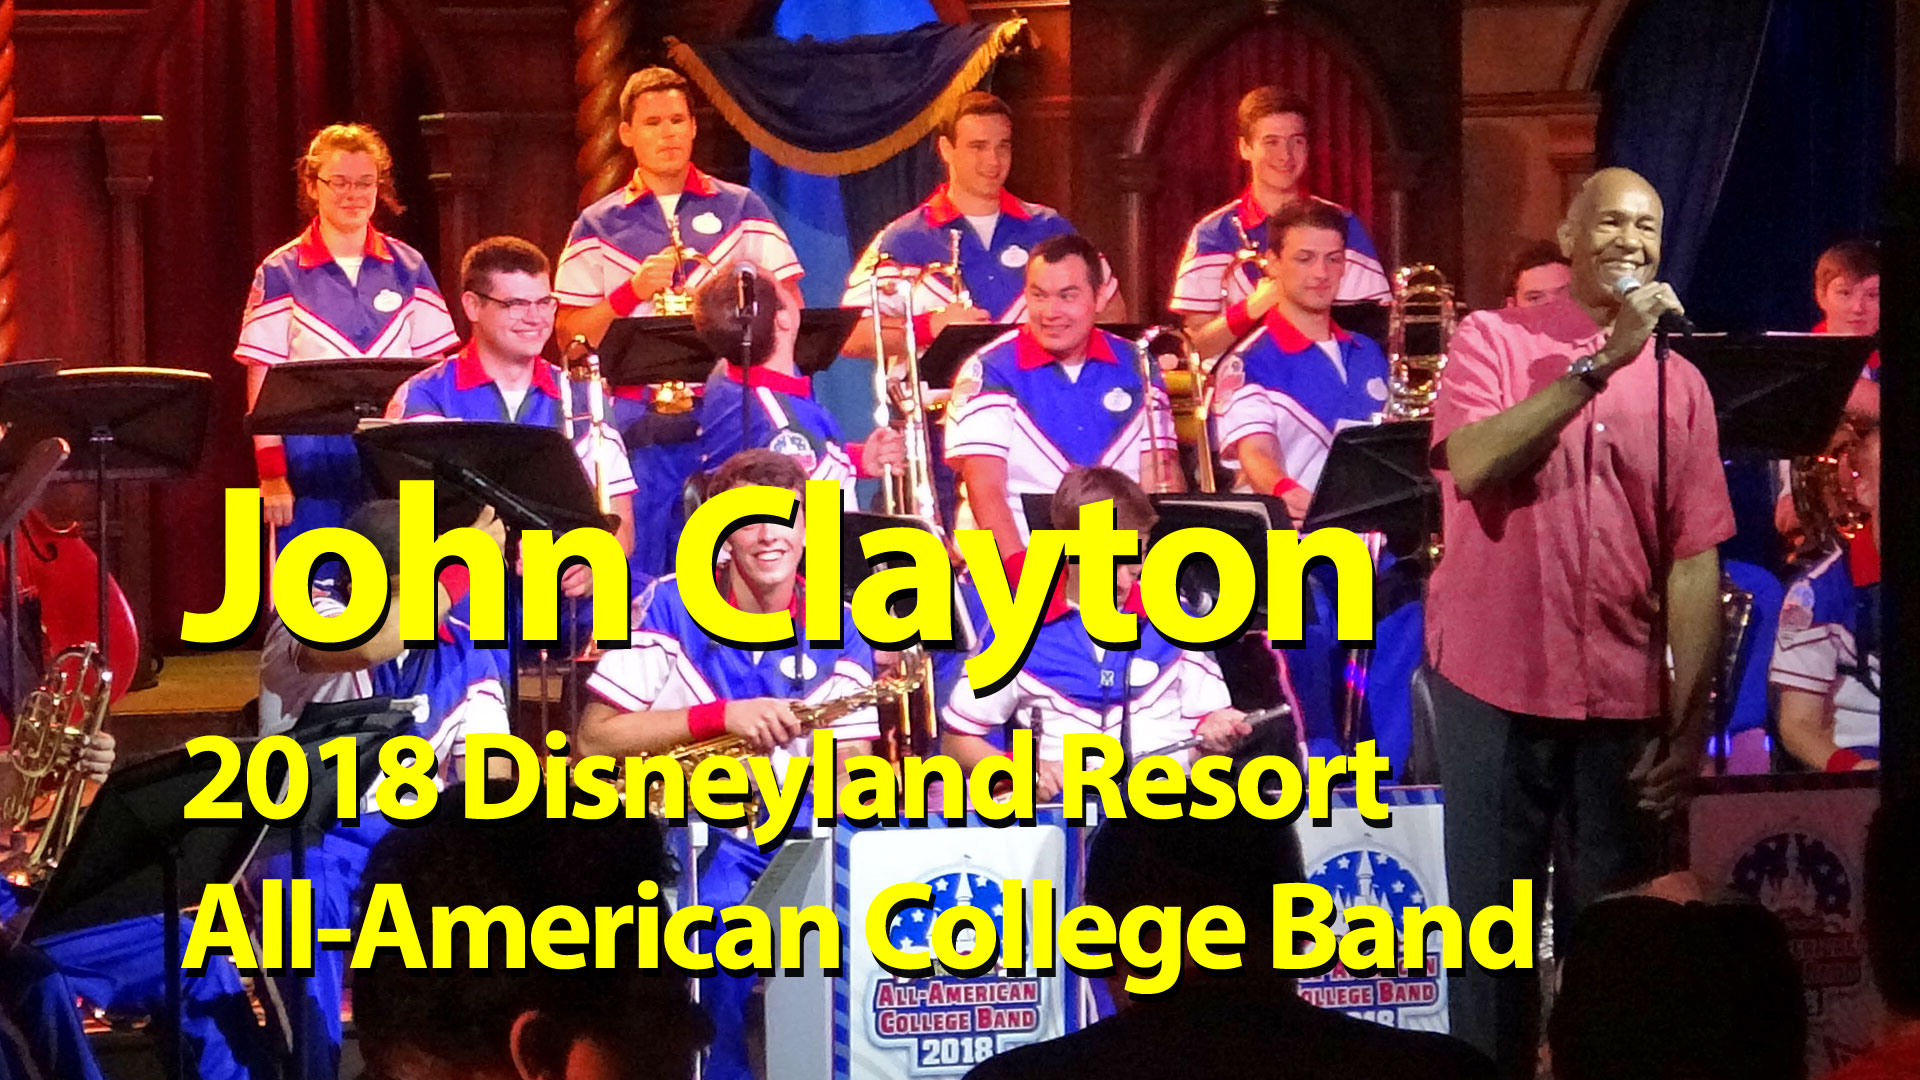 John Clayton Gets Jazzy With The 2018 Disneyland Resort All-American College Band